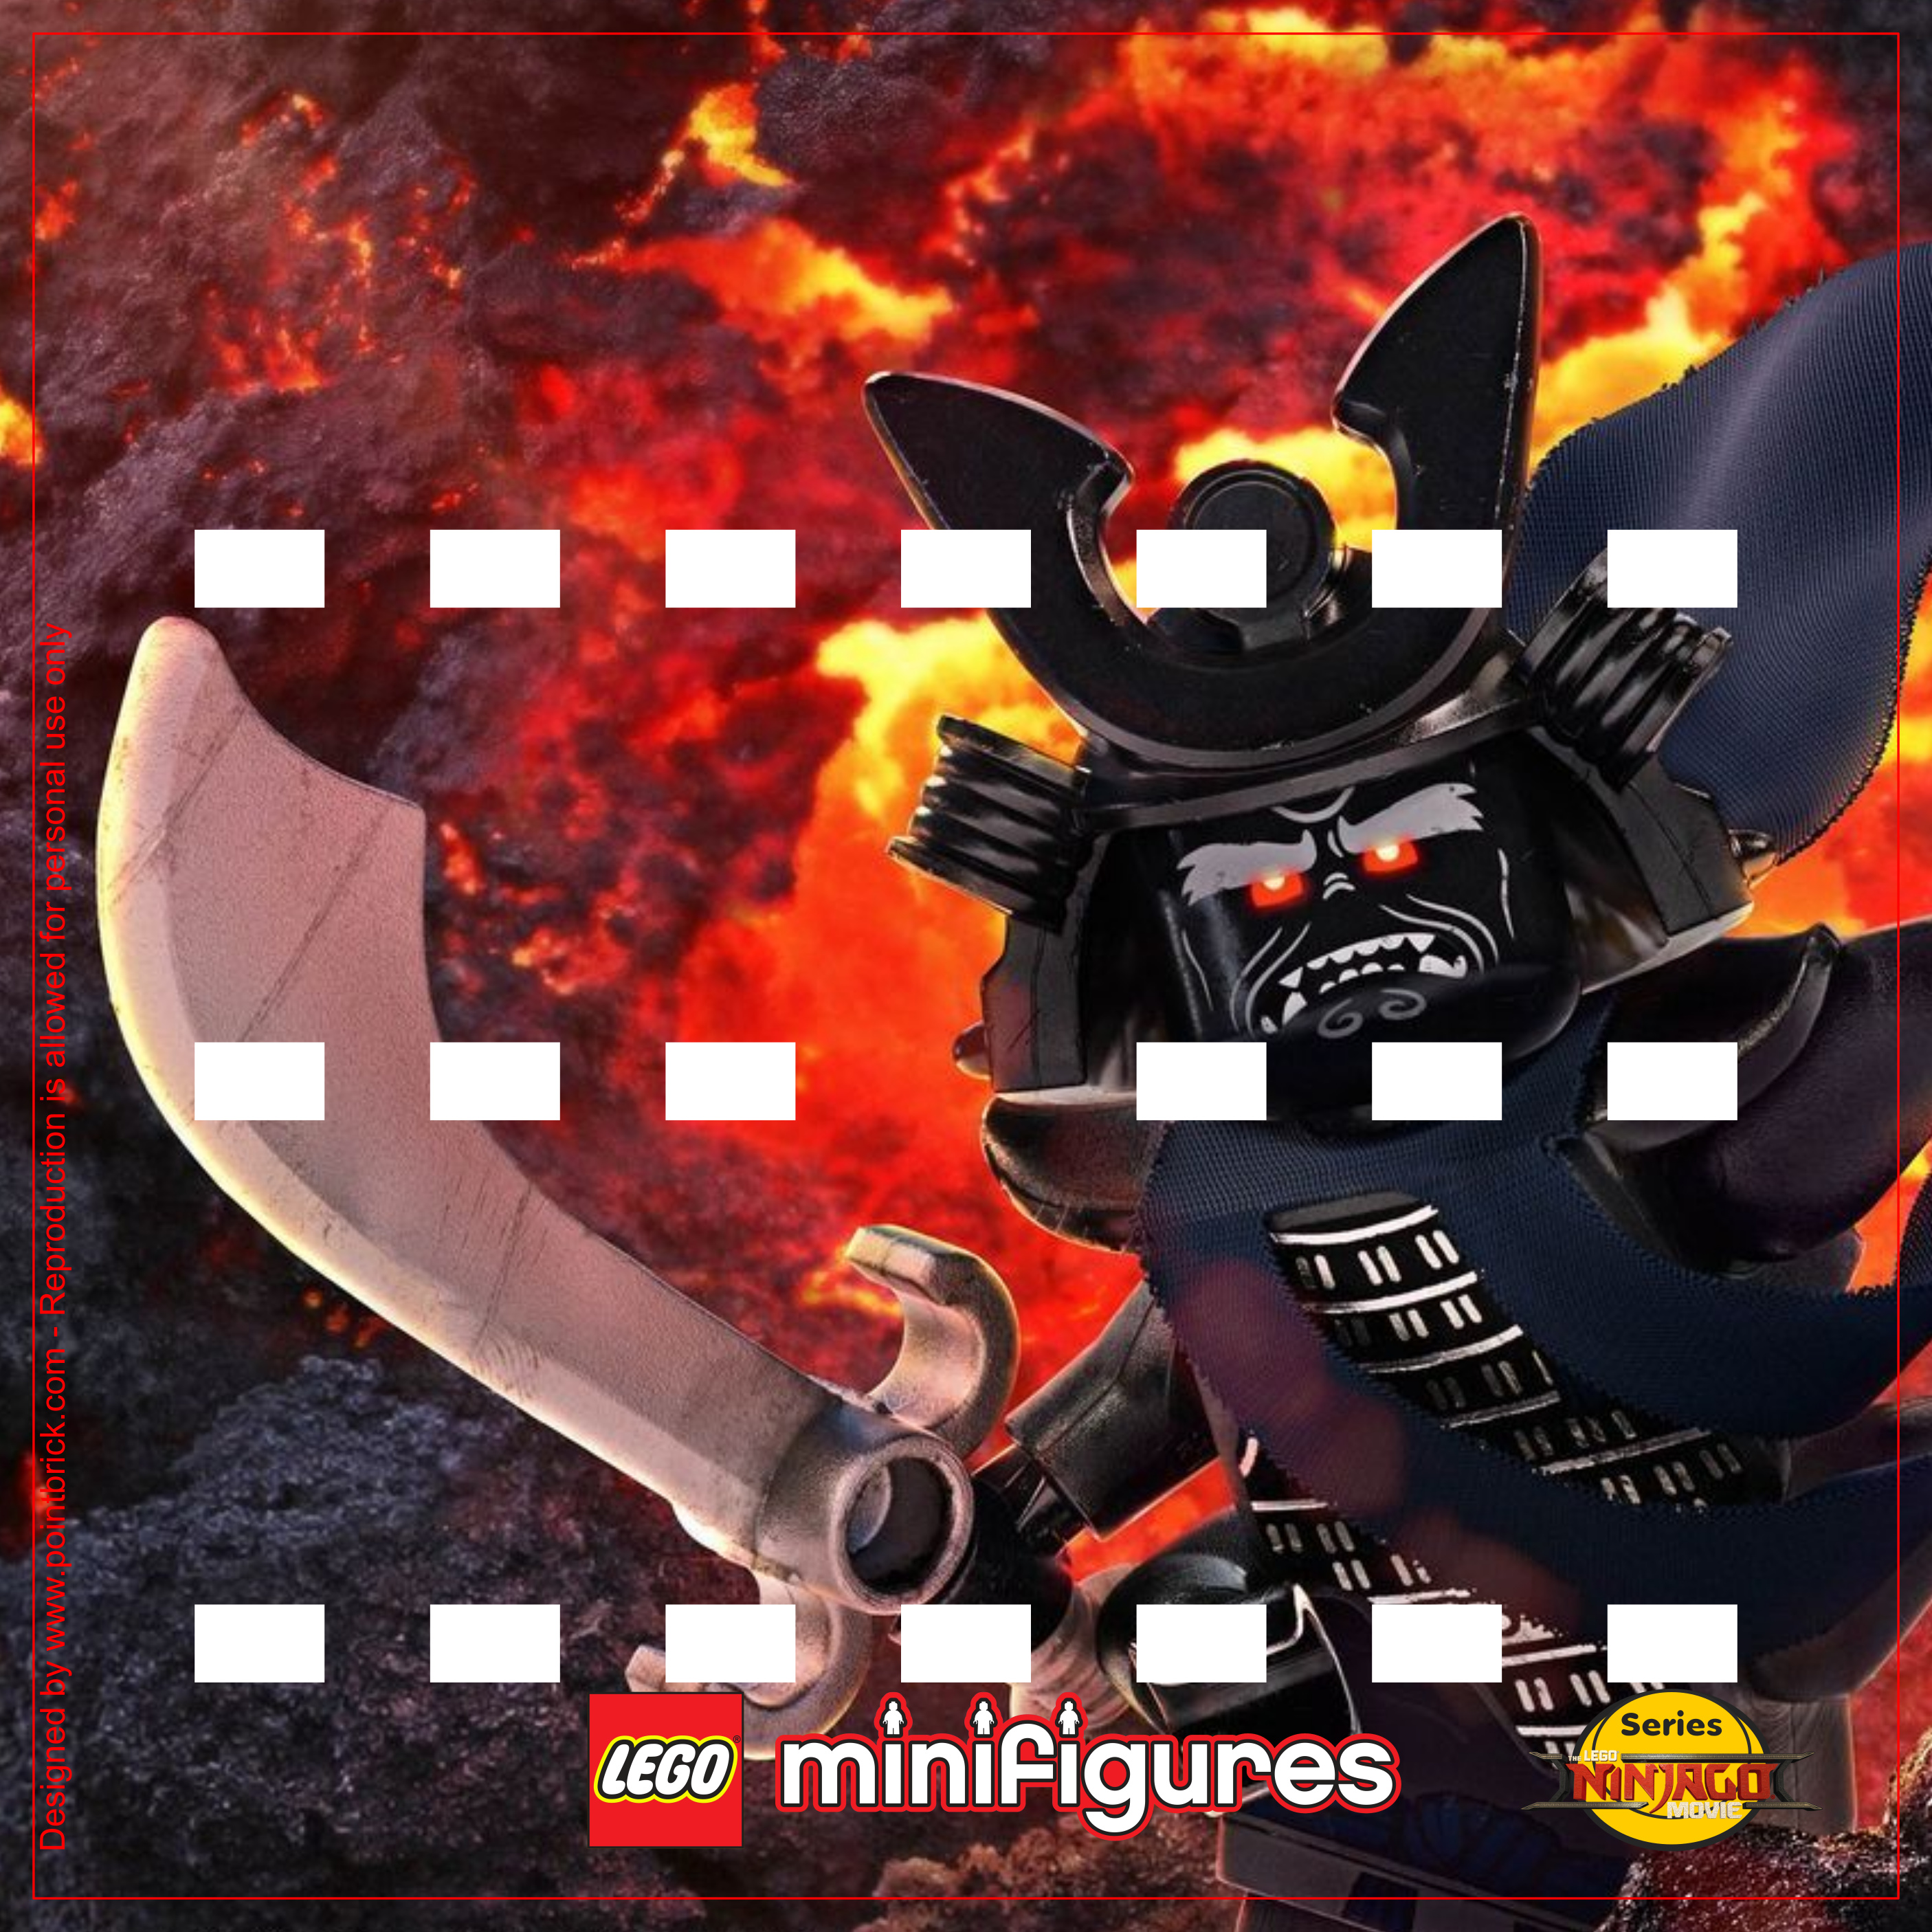 LEGO Minifigures 71019 The LEGO Ninjago Movie Garmadon - Display Frame Background 230mm - Clicca sull'immagine per scaricarla gratuitamente!